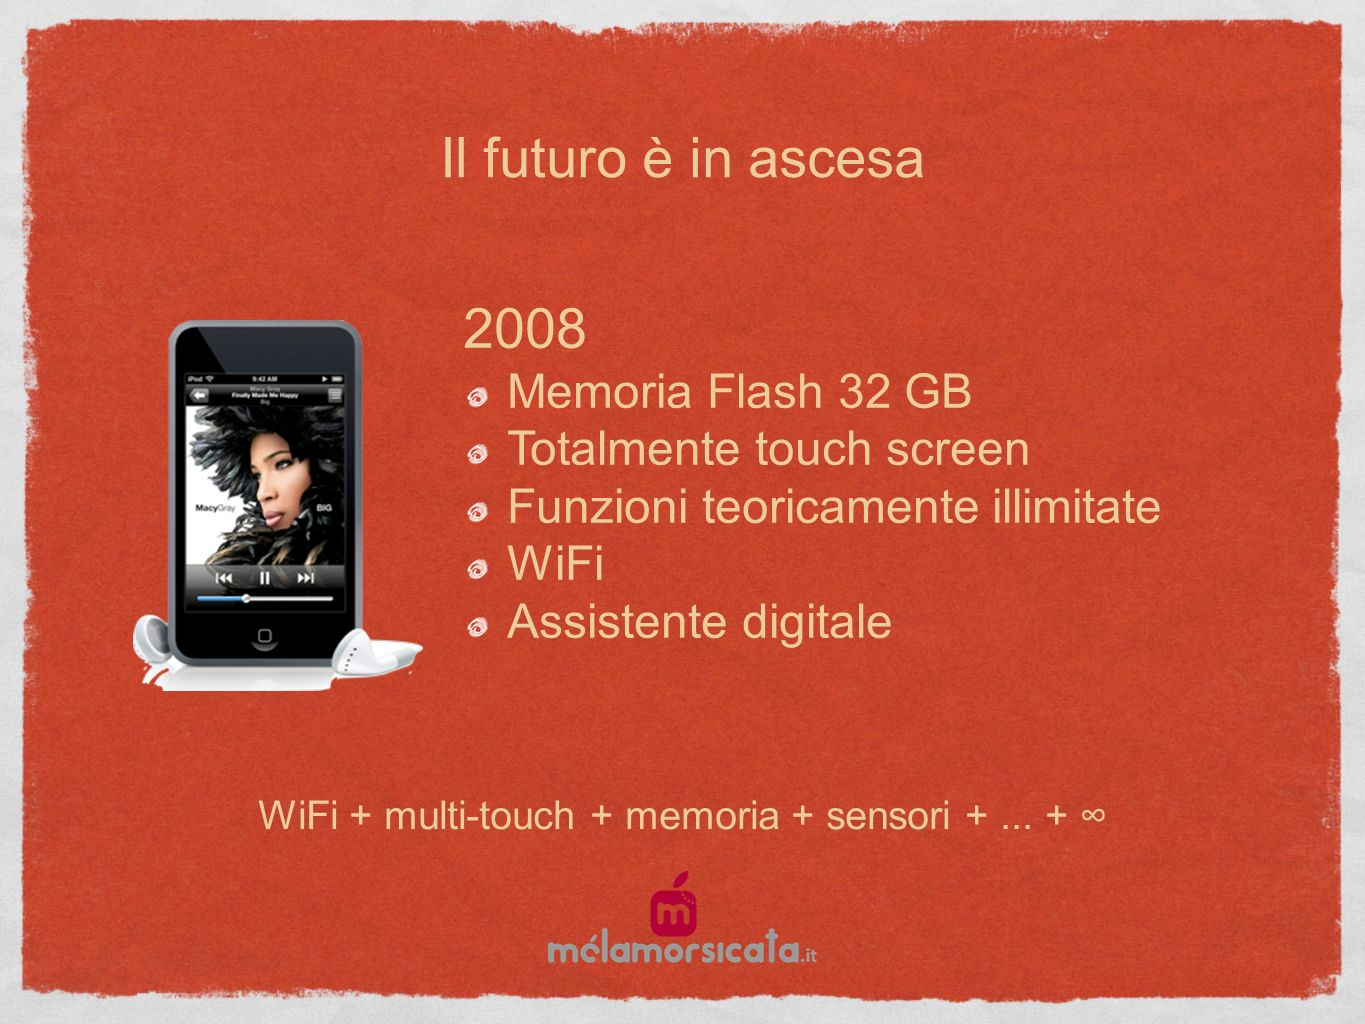 2008 Memoria Flash 32 GB Totalmente touch screen Funzioni teoricamente illimitate WiFi Assistente digitale Il futuro è in ascesa WiFi + multi-touch + memoria + sensori +...